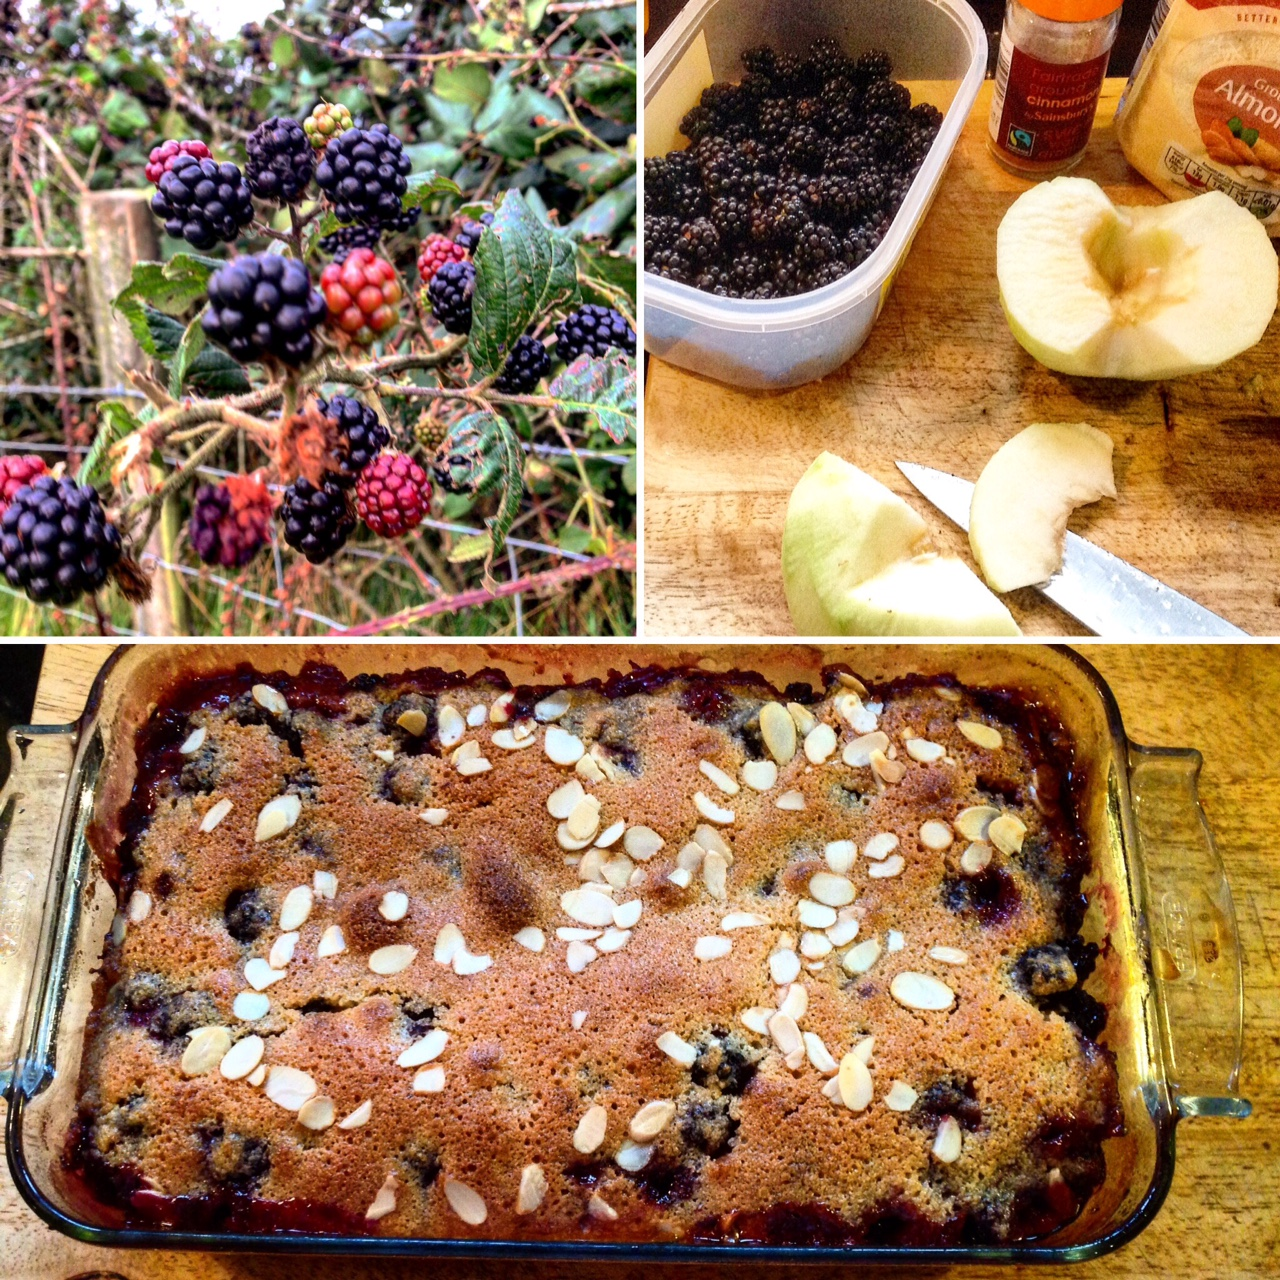 Bramble & Apple Bake Recipe